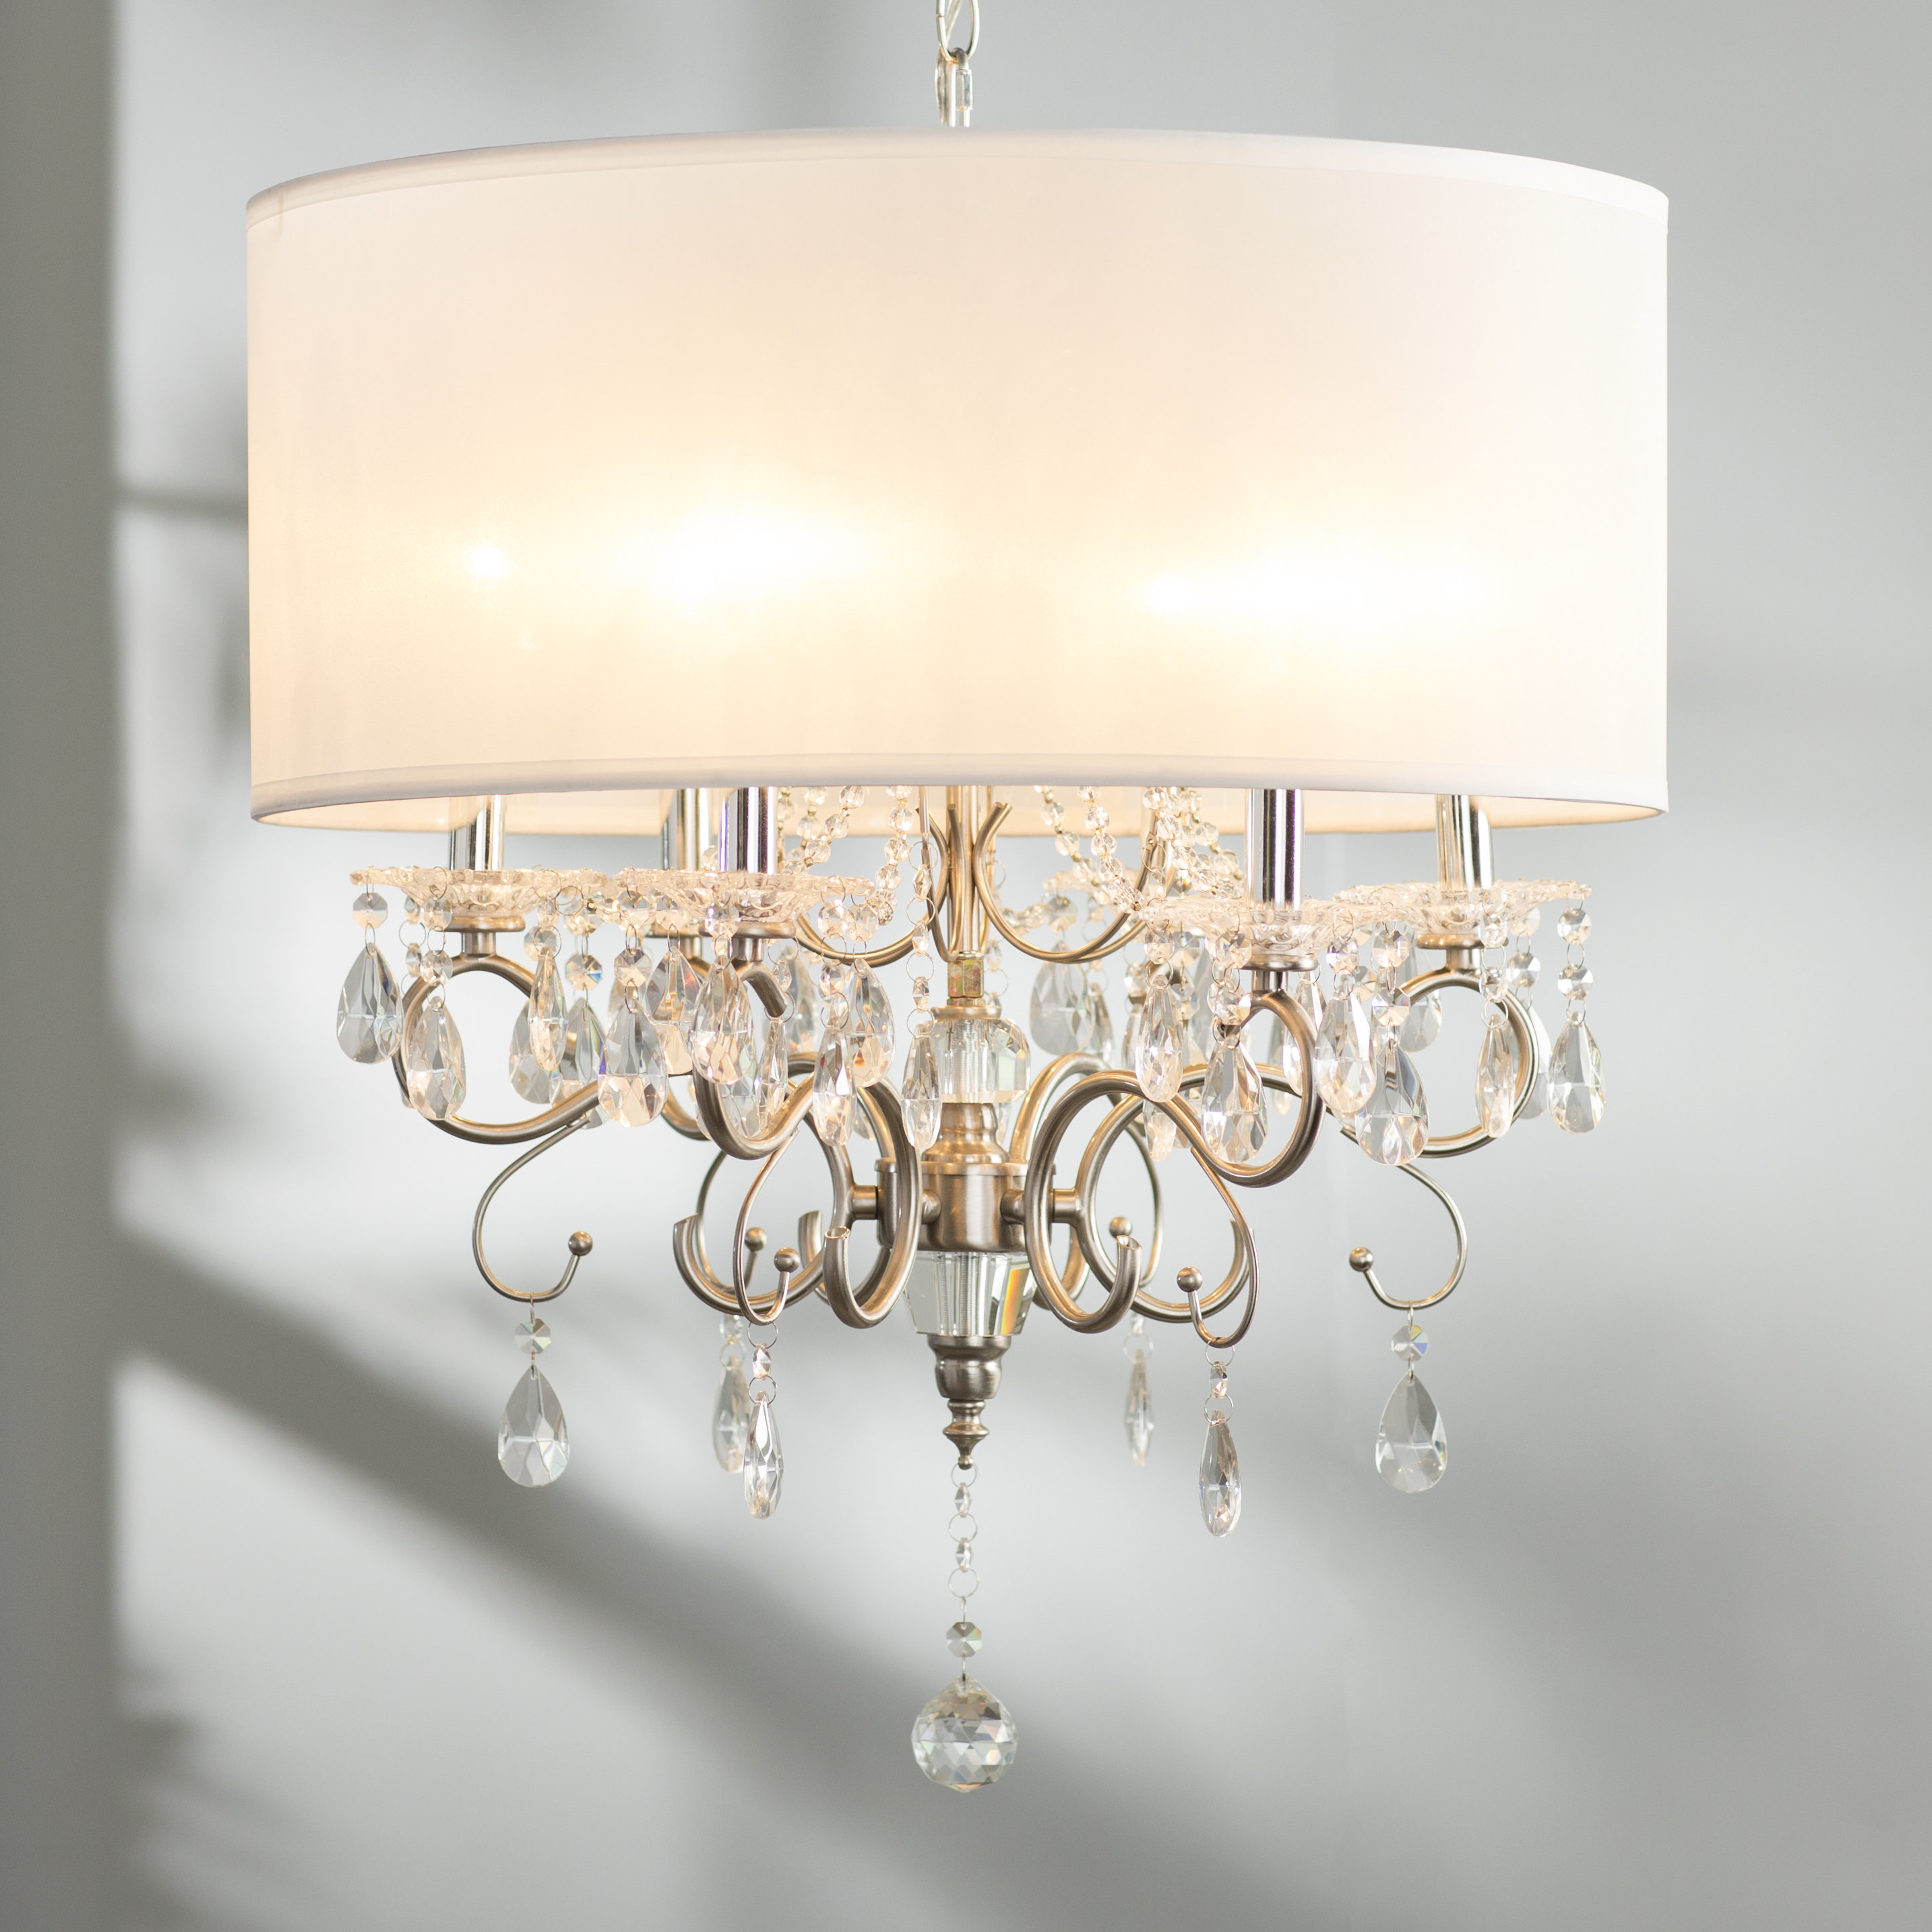 Honiton 6 Light Chandelier Intended For Popular Abel 5 Light Drum Chandeliers (Gallery 21 of 25)